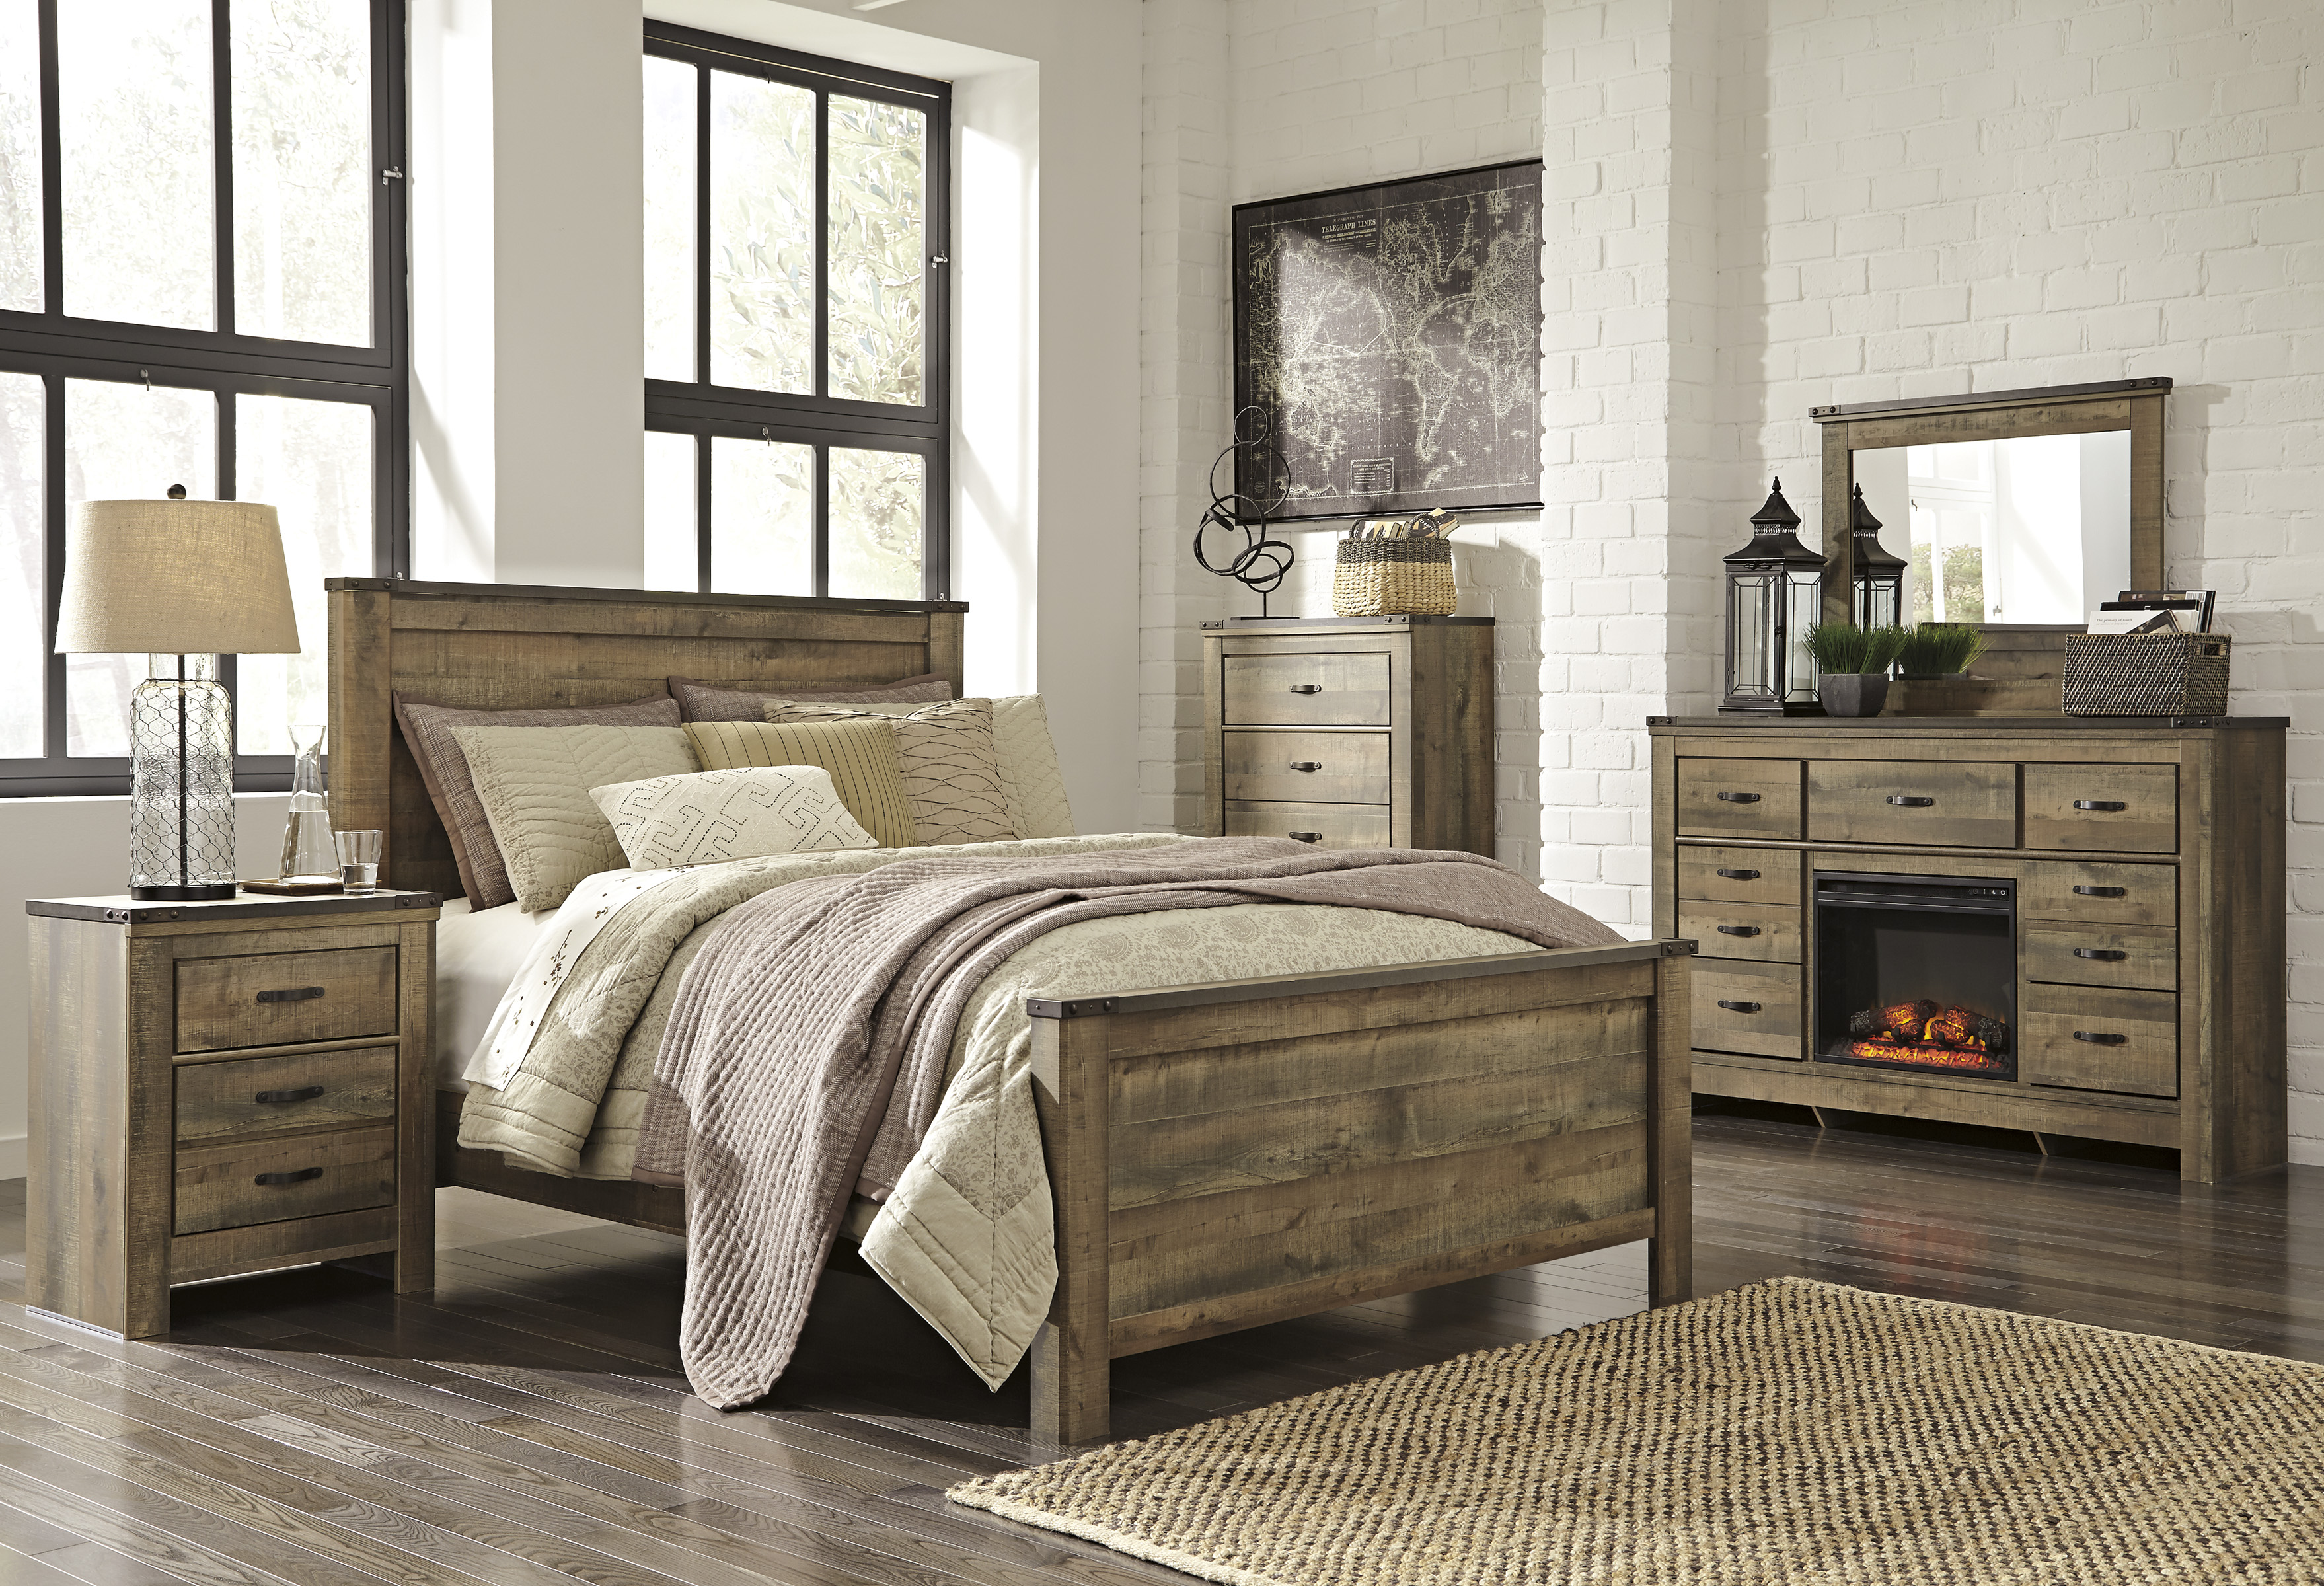 Barnwood Bedroom Set | Best Interior & Furniture